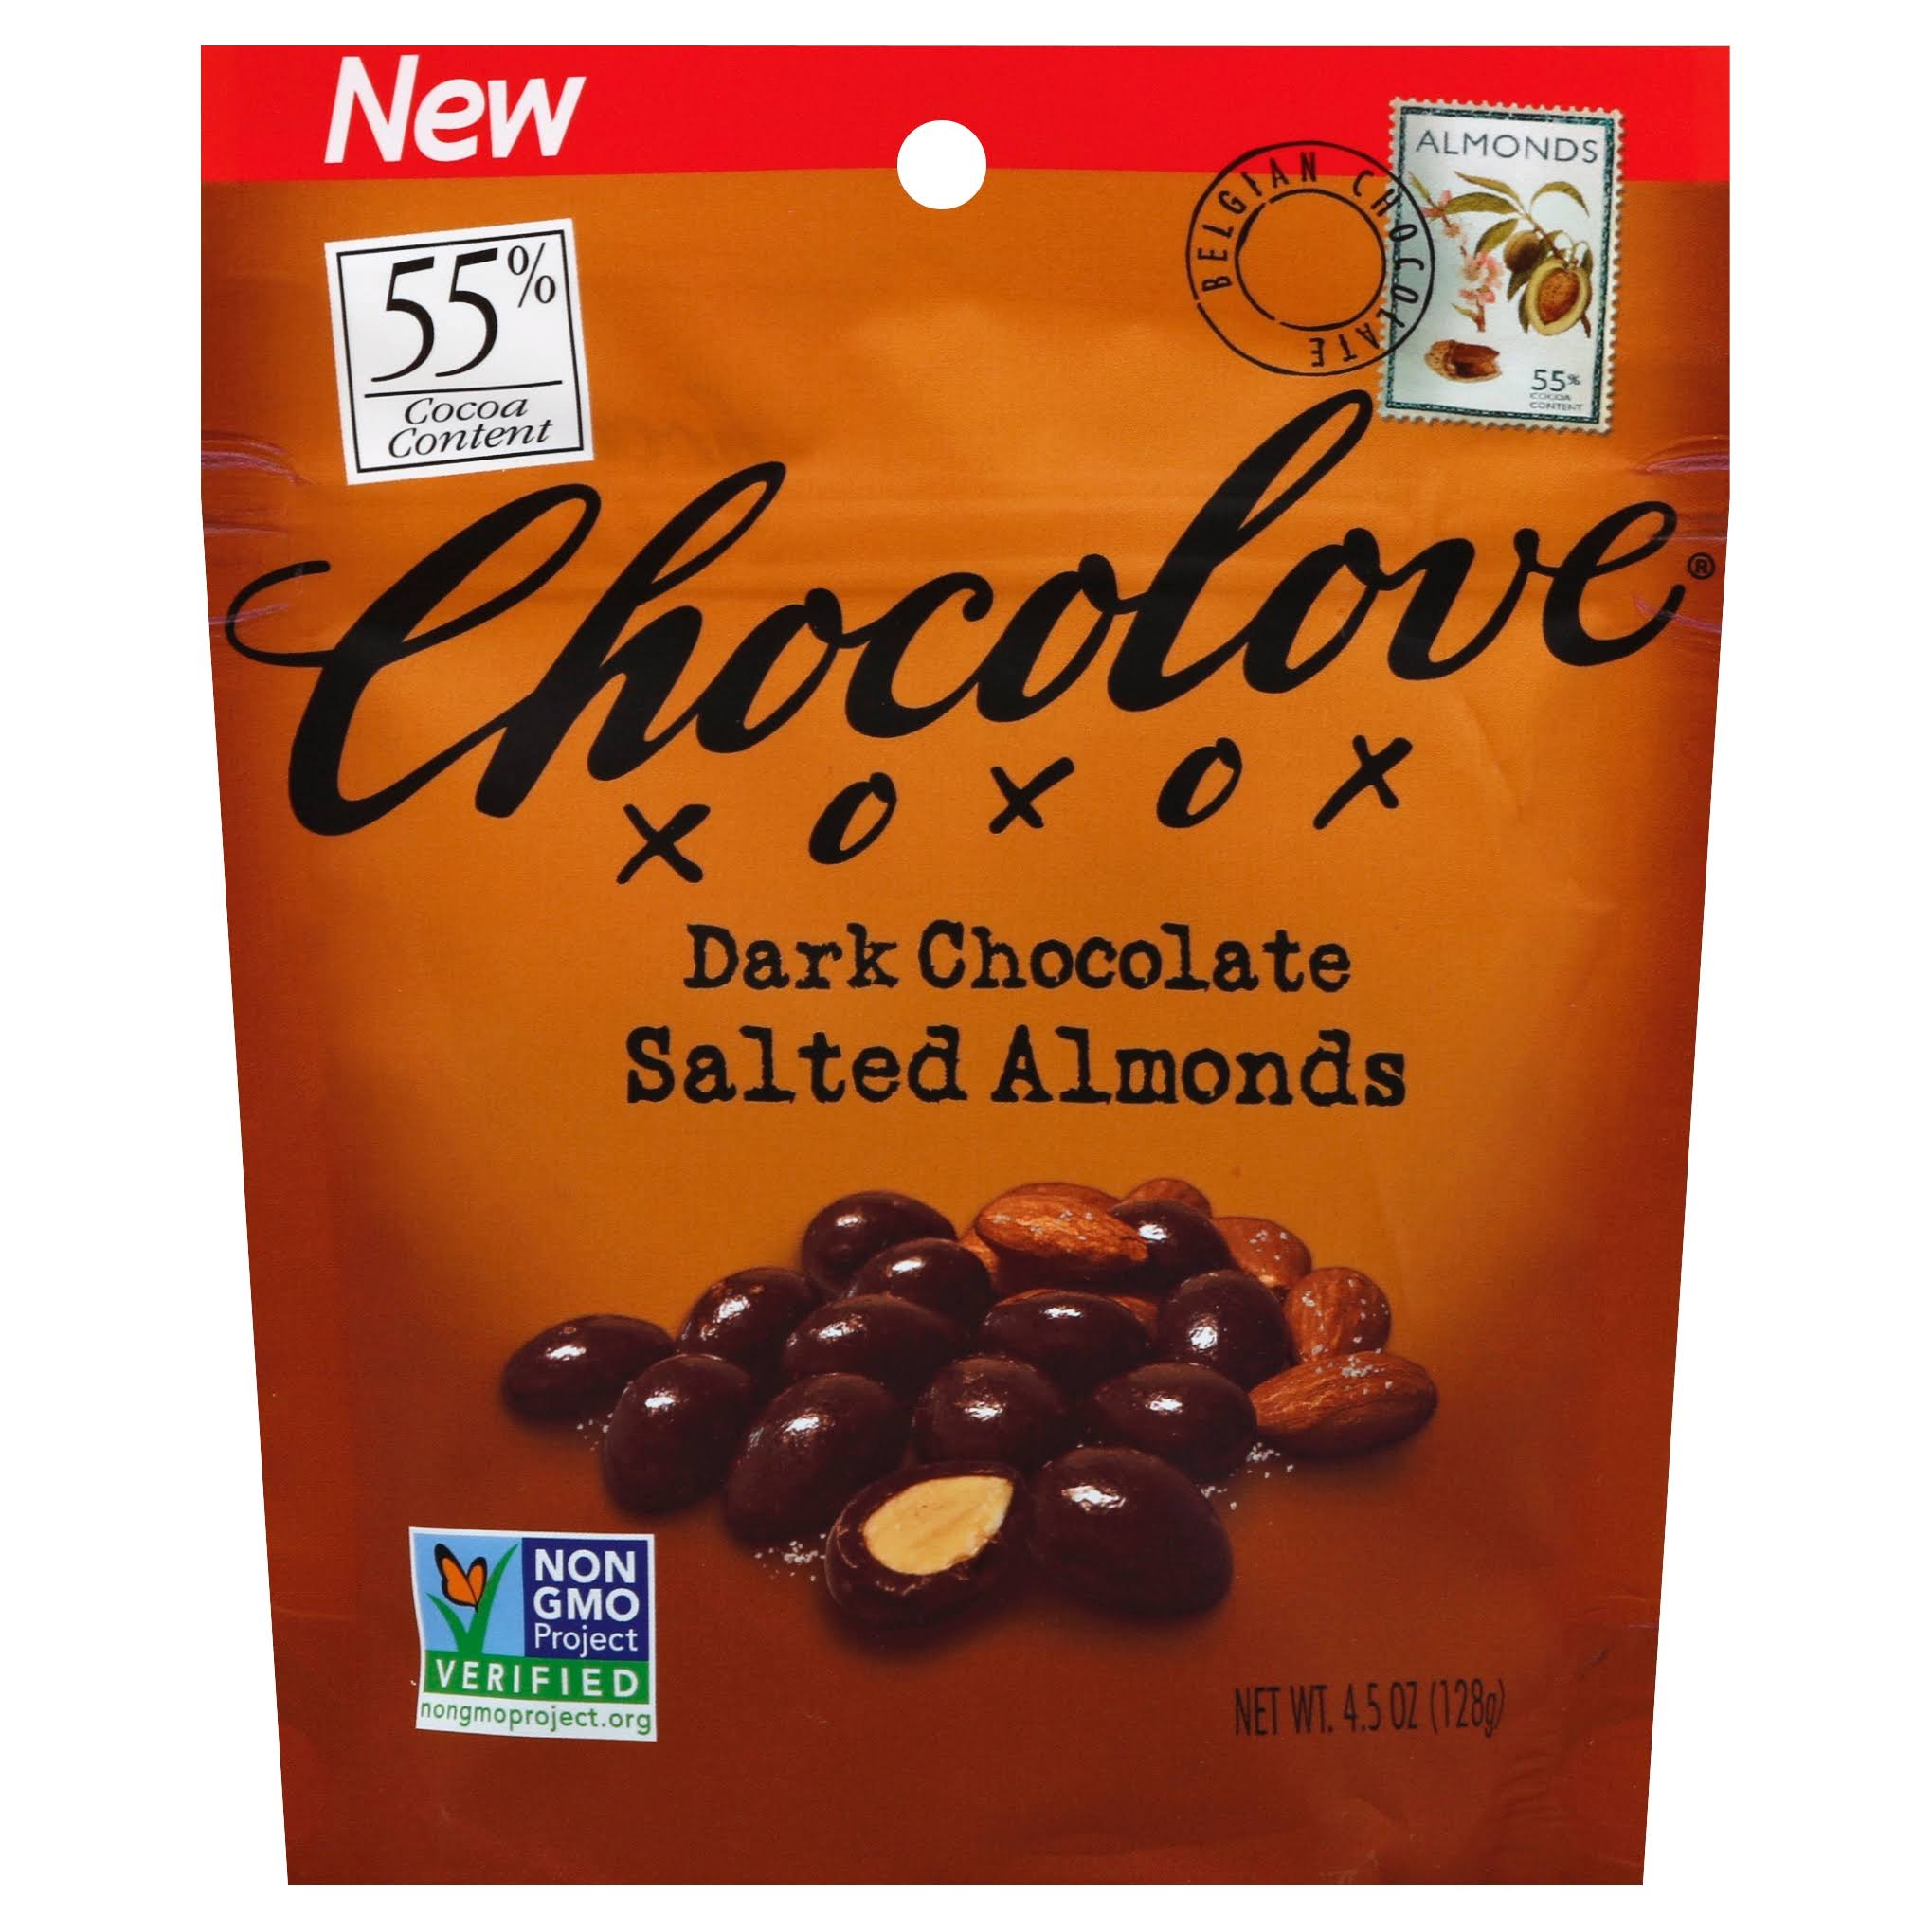 Chocolove 55 Cocoa Dark Chocolate Salted Almonds 4.5 oz.